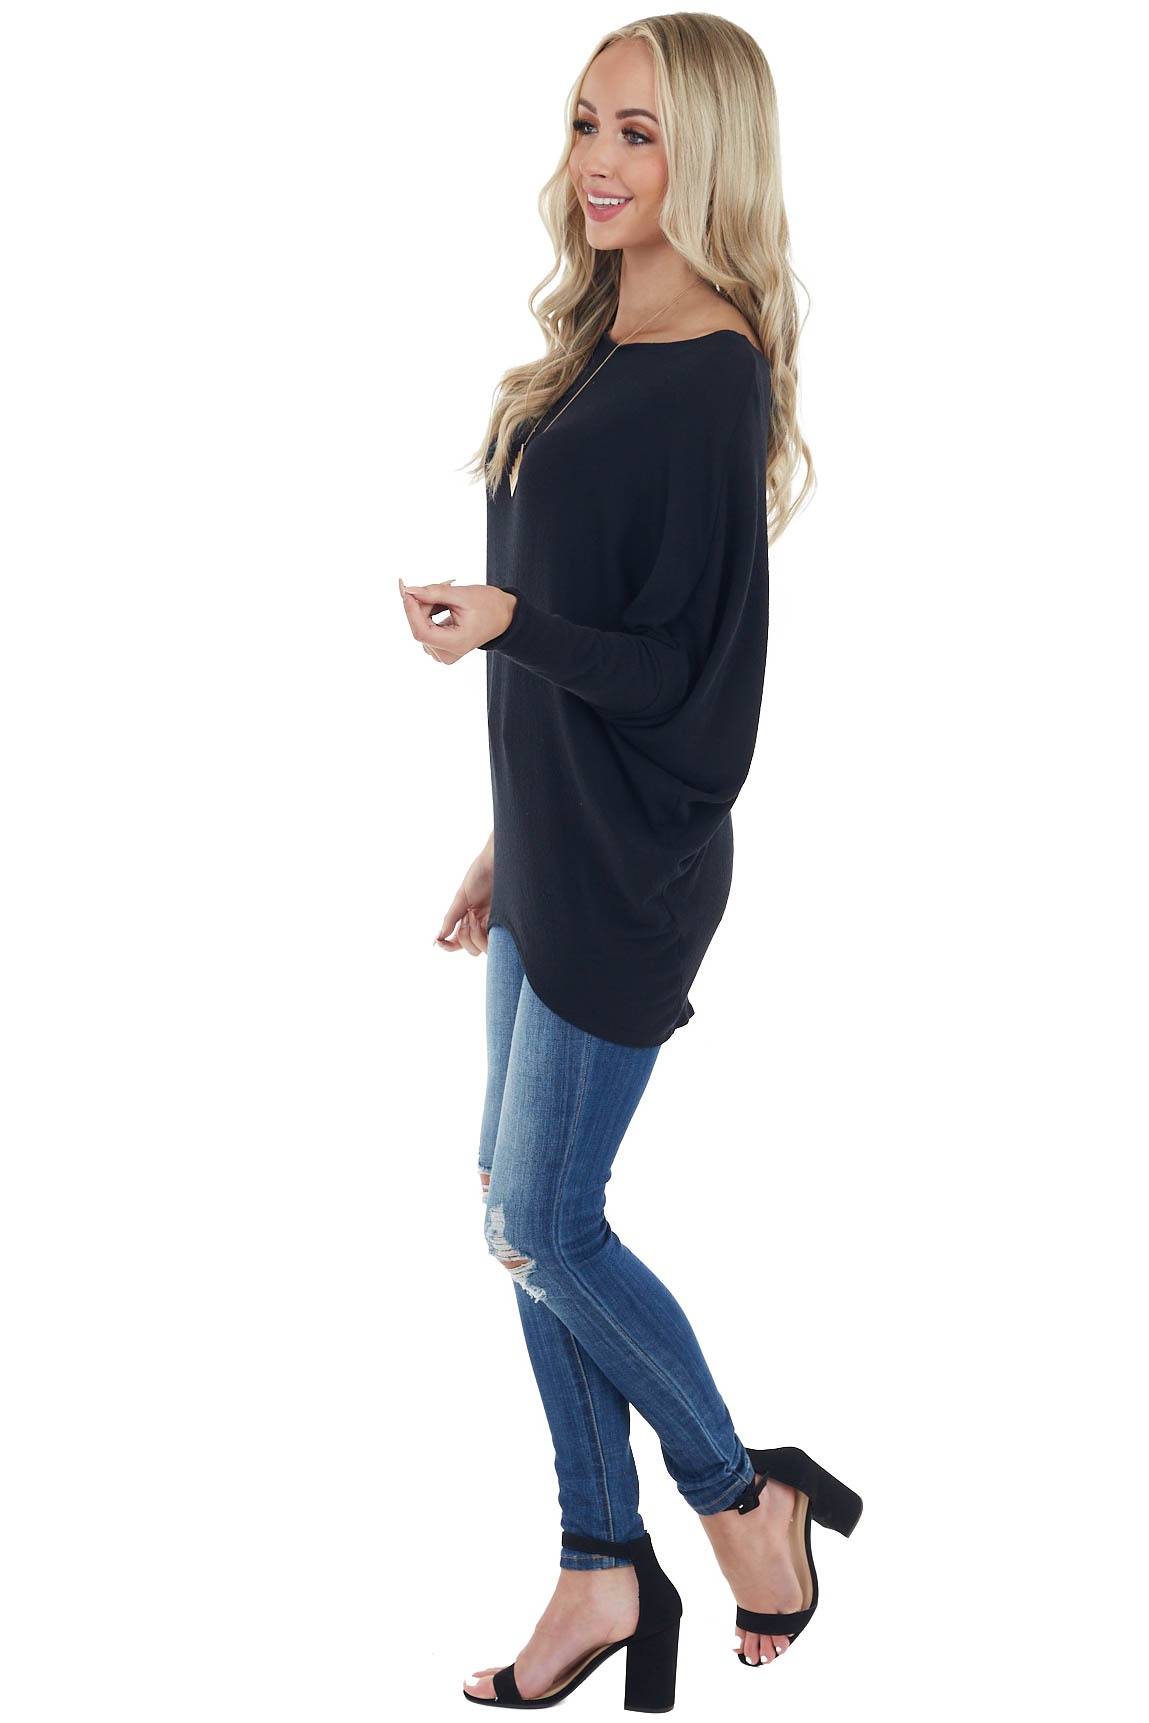 Black Round Neck Knit Top with Long Dolman Sleeves